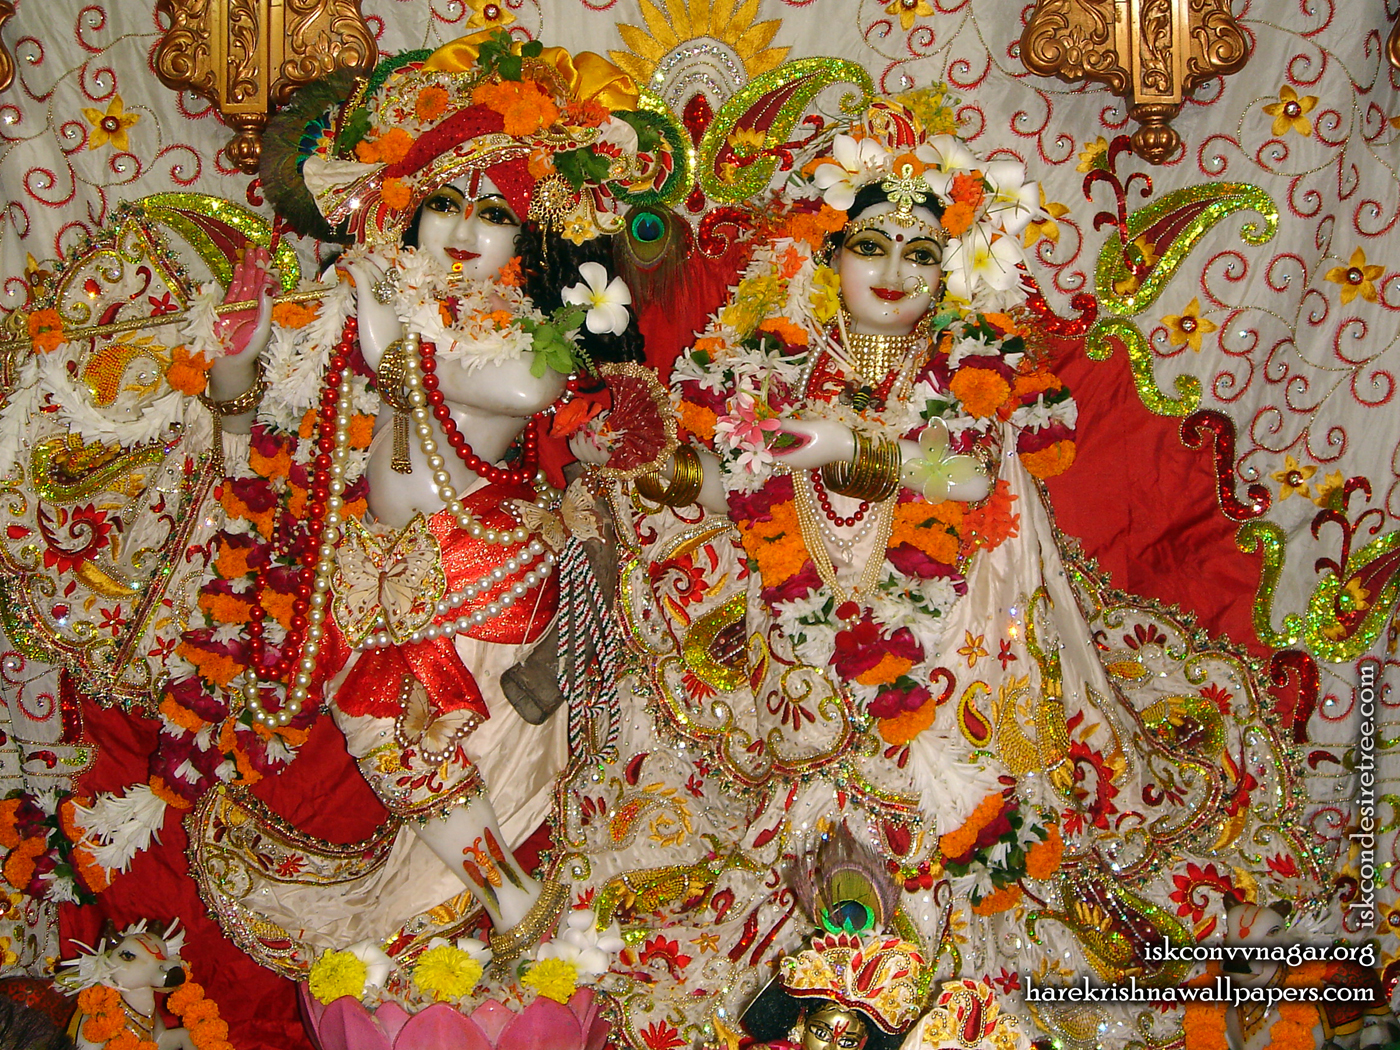 Sri Sri Radha Giridhari Wallpaper (025) Size 1400x1050 Download